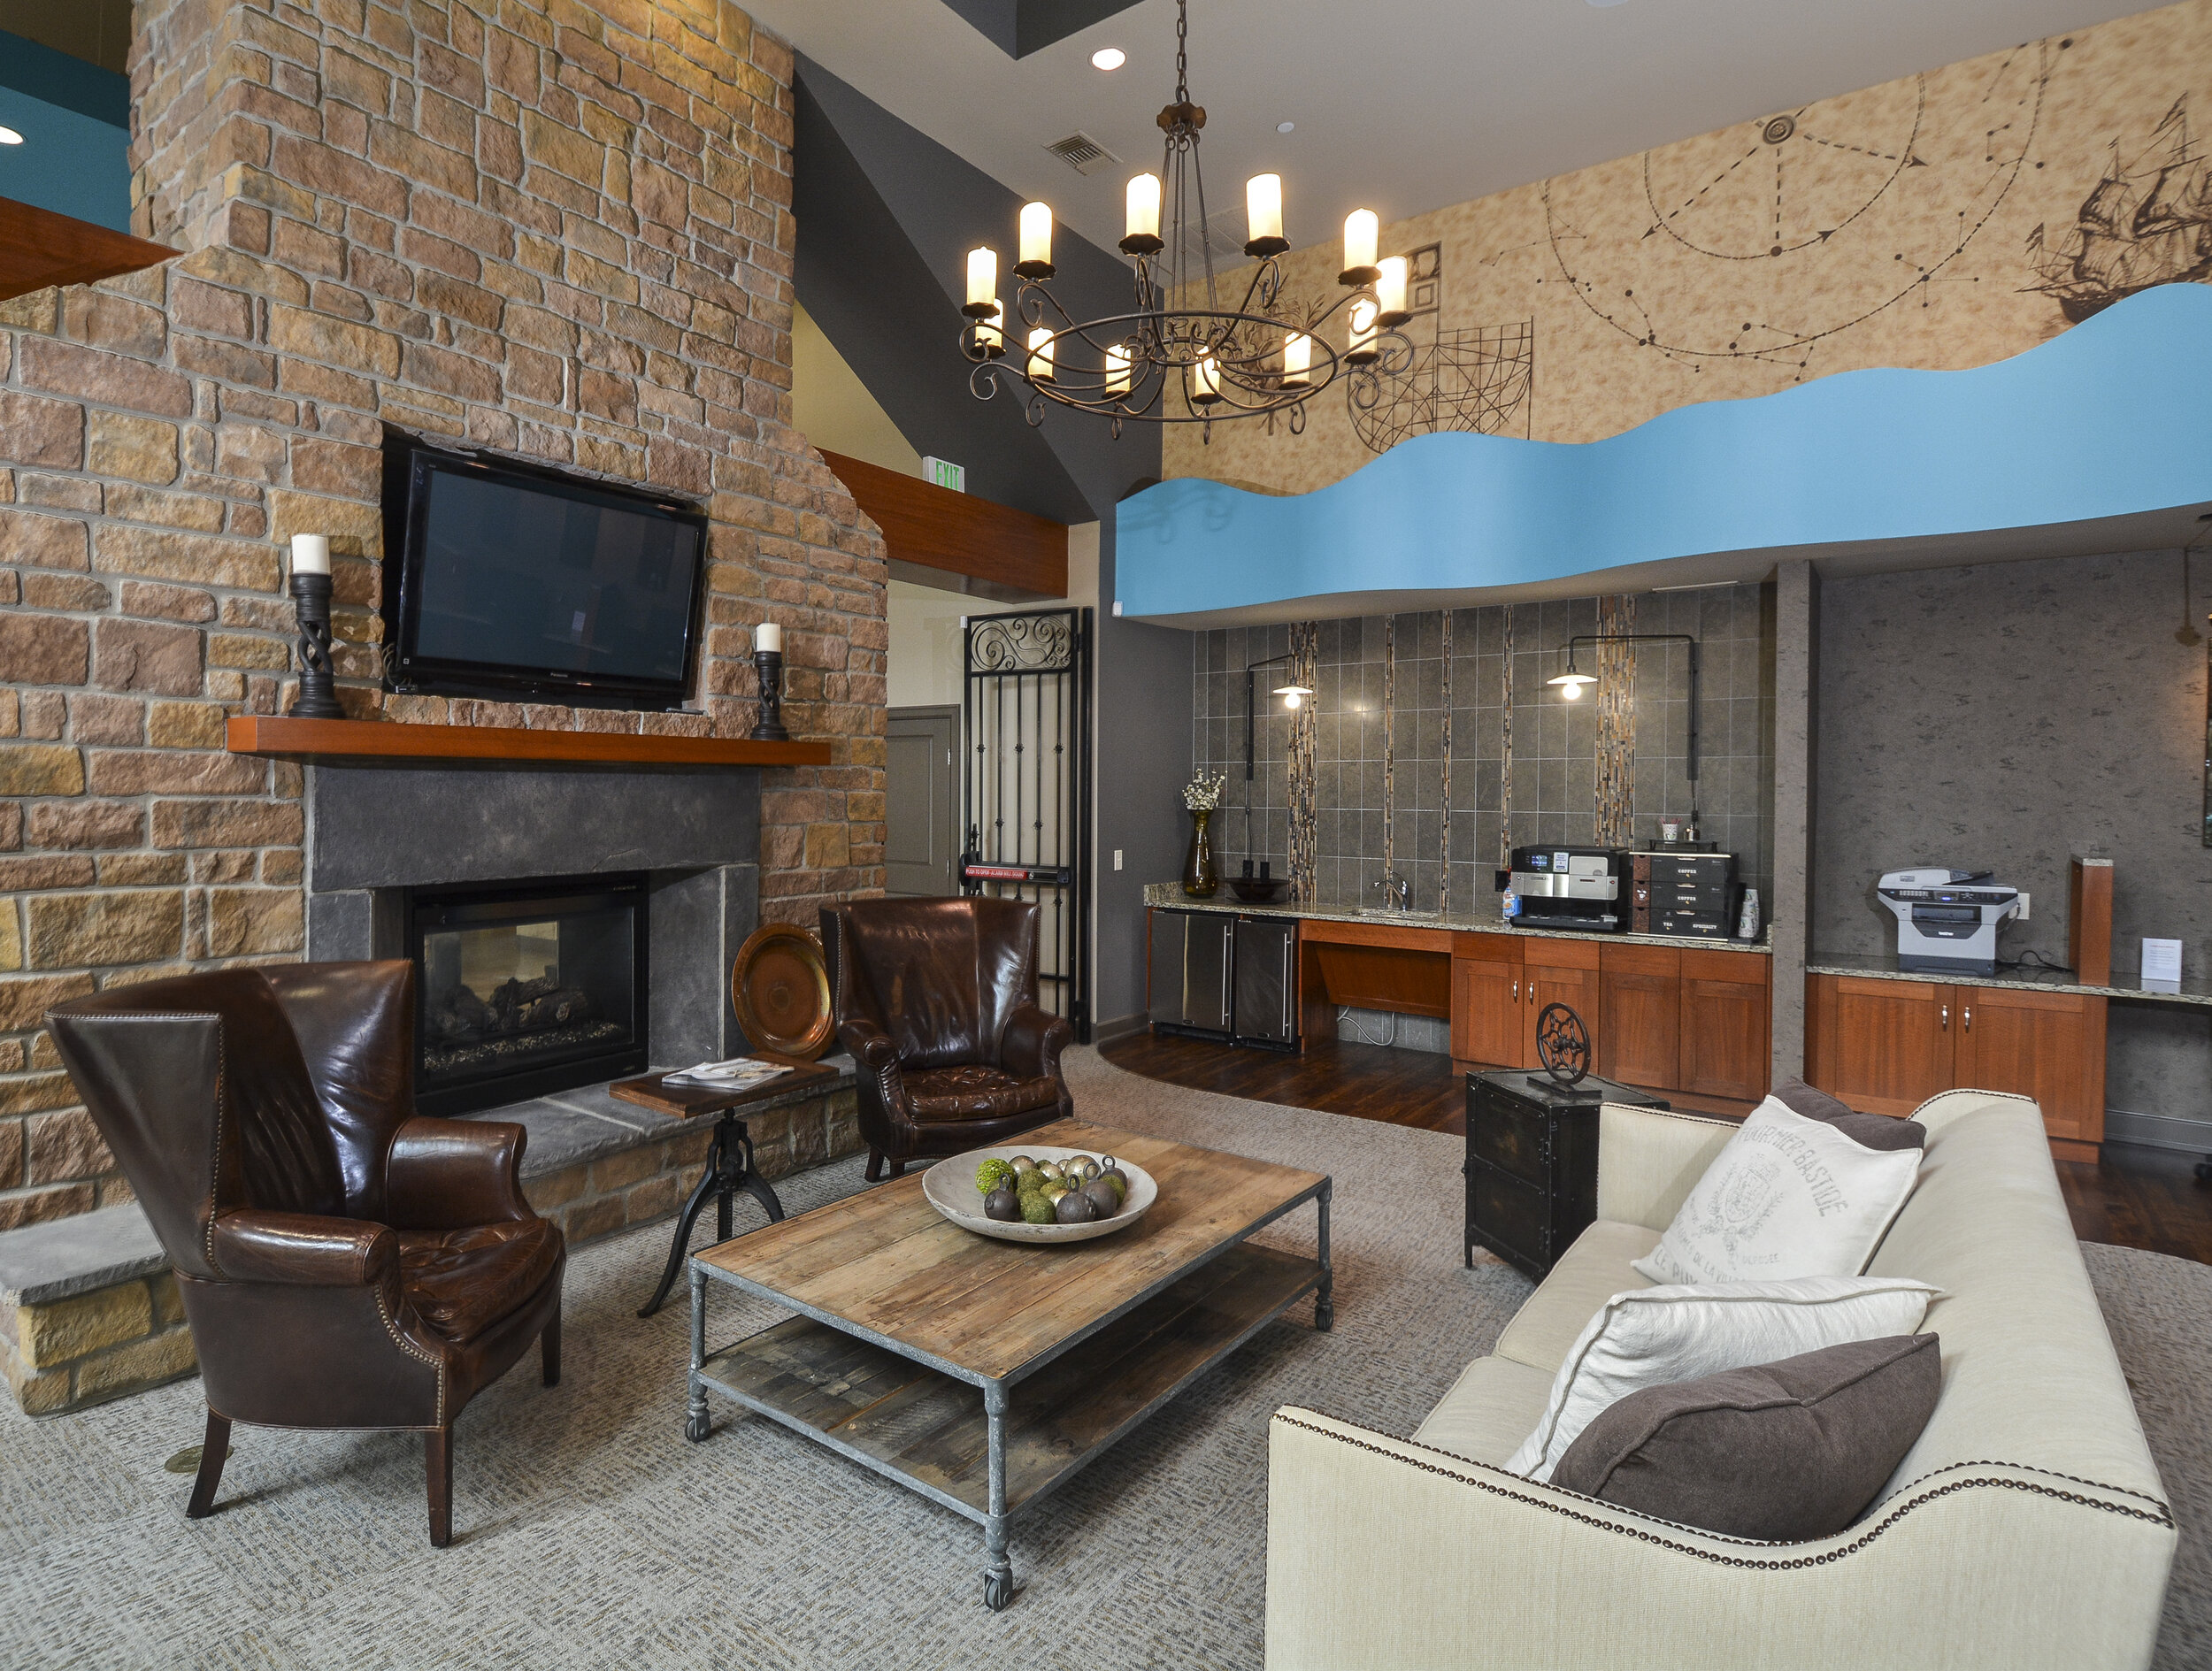 17-Cozy Clubhouse Fireplace With TV _ Coffee Bar.jpg